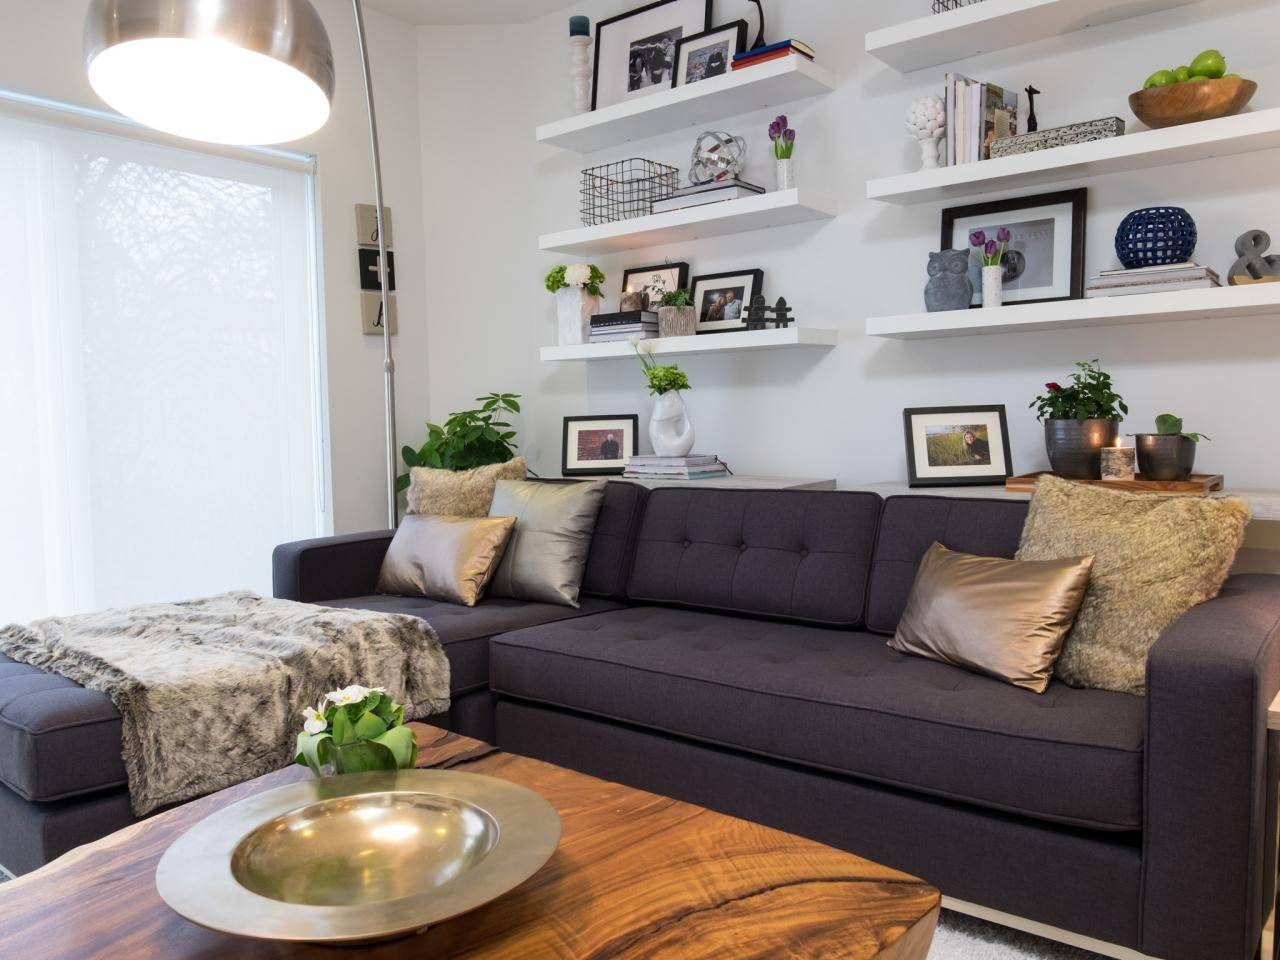 12 Living Room Ideas For A Grey Sectional | Hgtv's Decorating throughout Decorating With a Sectional Sofa (Image 3 of 30)